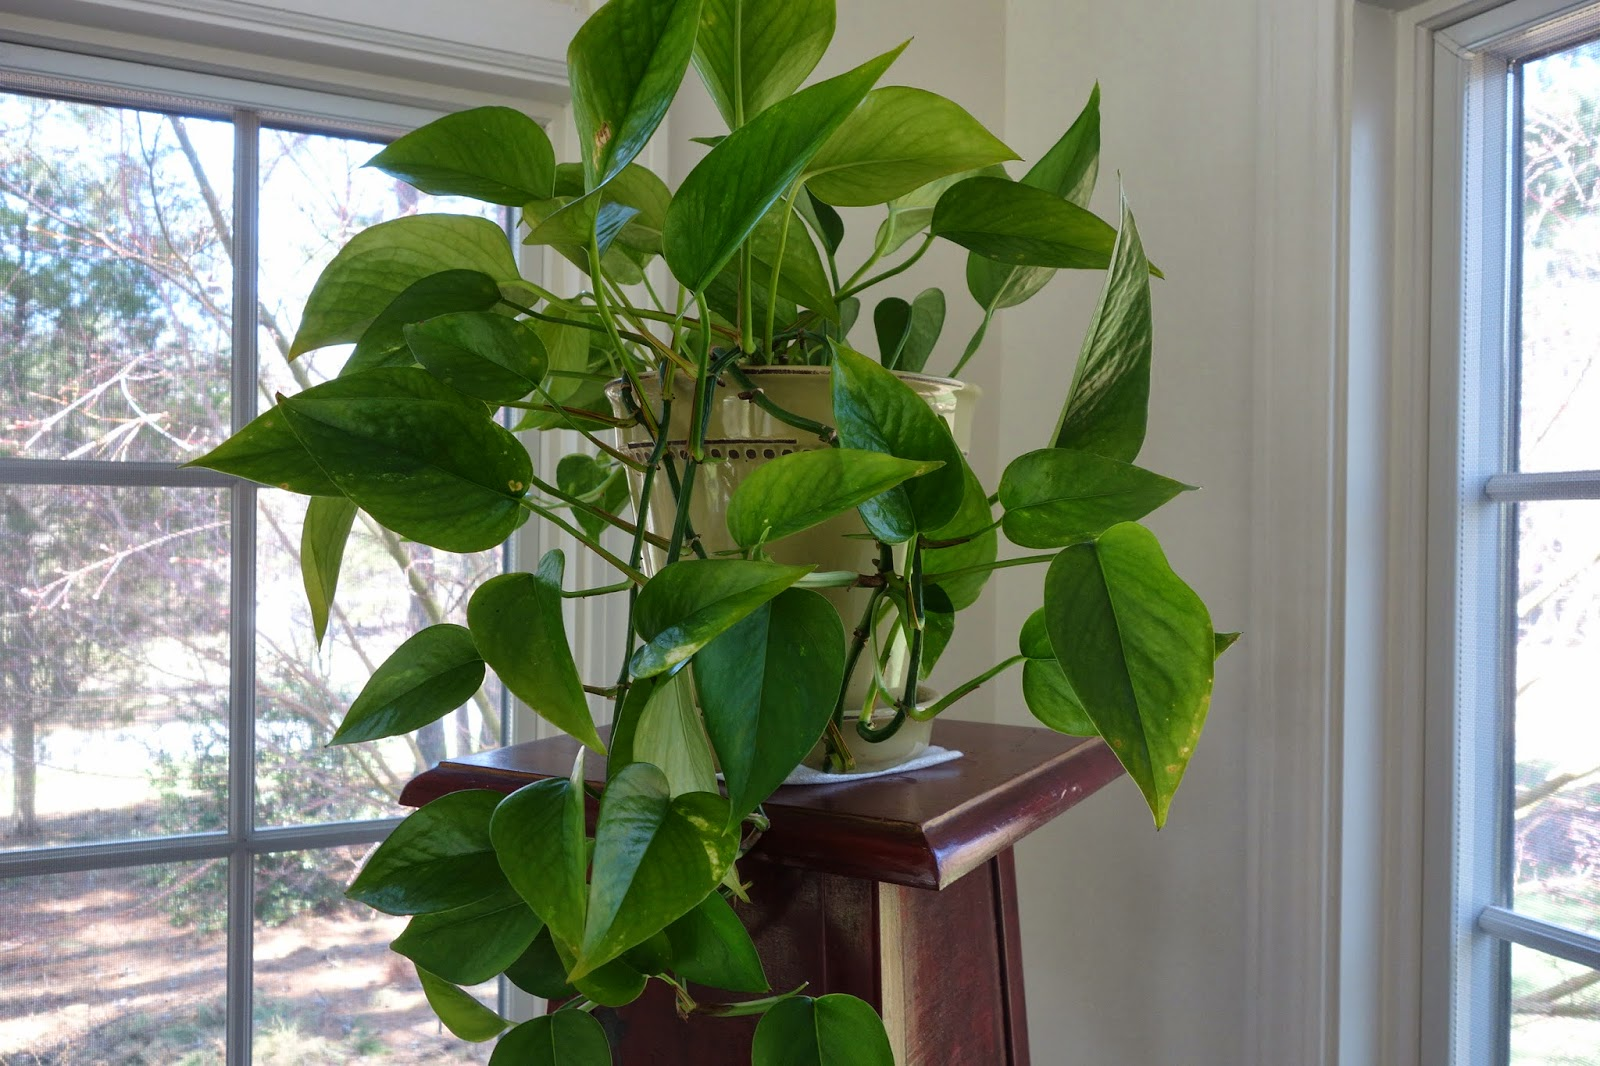 Pictures of vining house plants house pictures - House plants vines ...